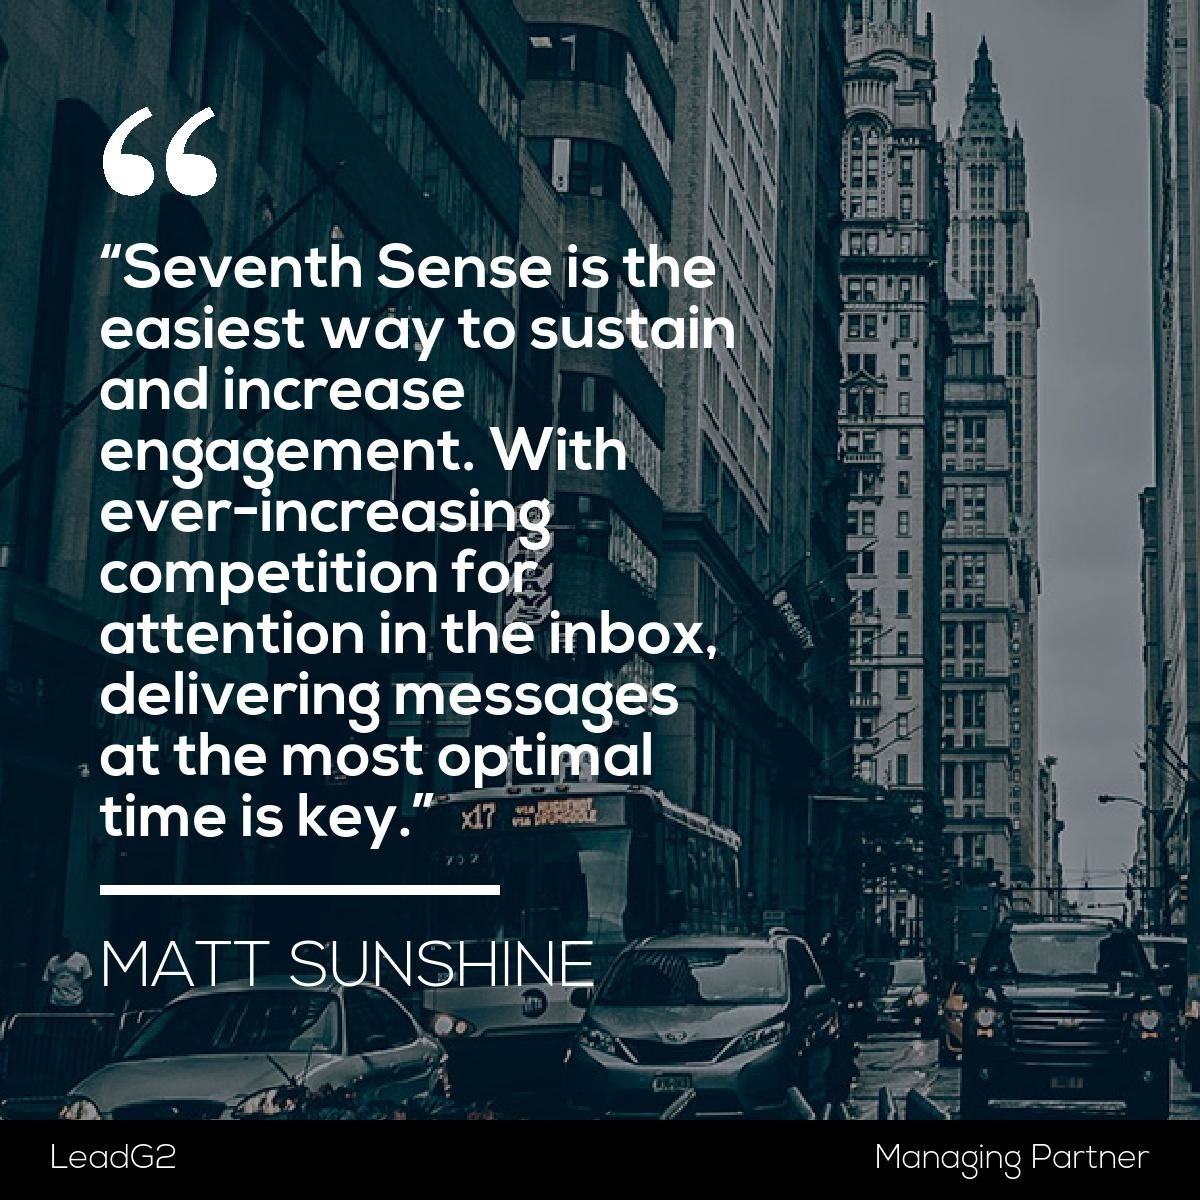 """Seventh Sense is the easiest way to sustain and increase engagement. With ever-increasing competition for attention in the inbox, delivering messages at the most optimal time is key."" -Matt Sunshine, Managing Partner, LeadG2 (Platinum Hubspot Agency Partner)"